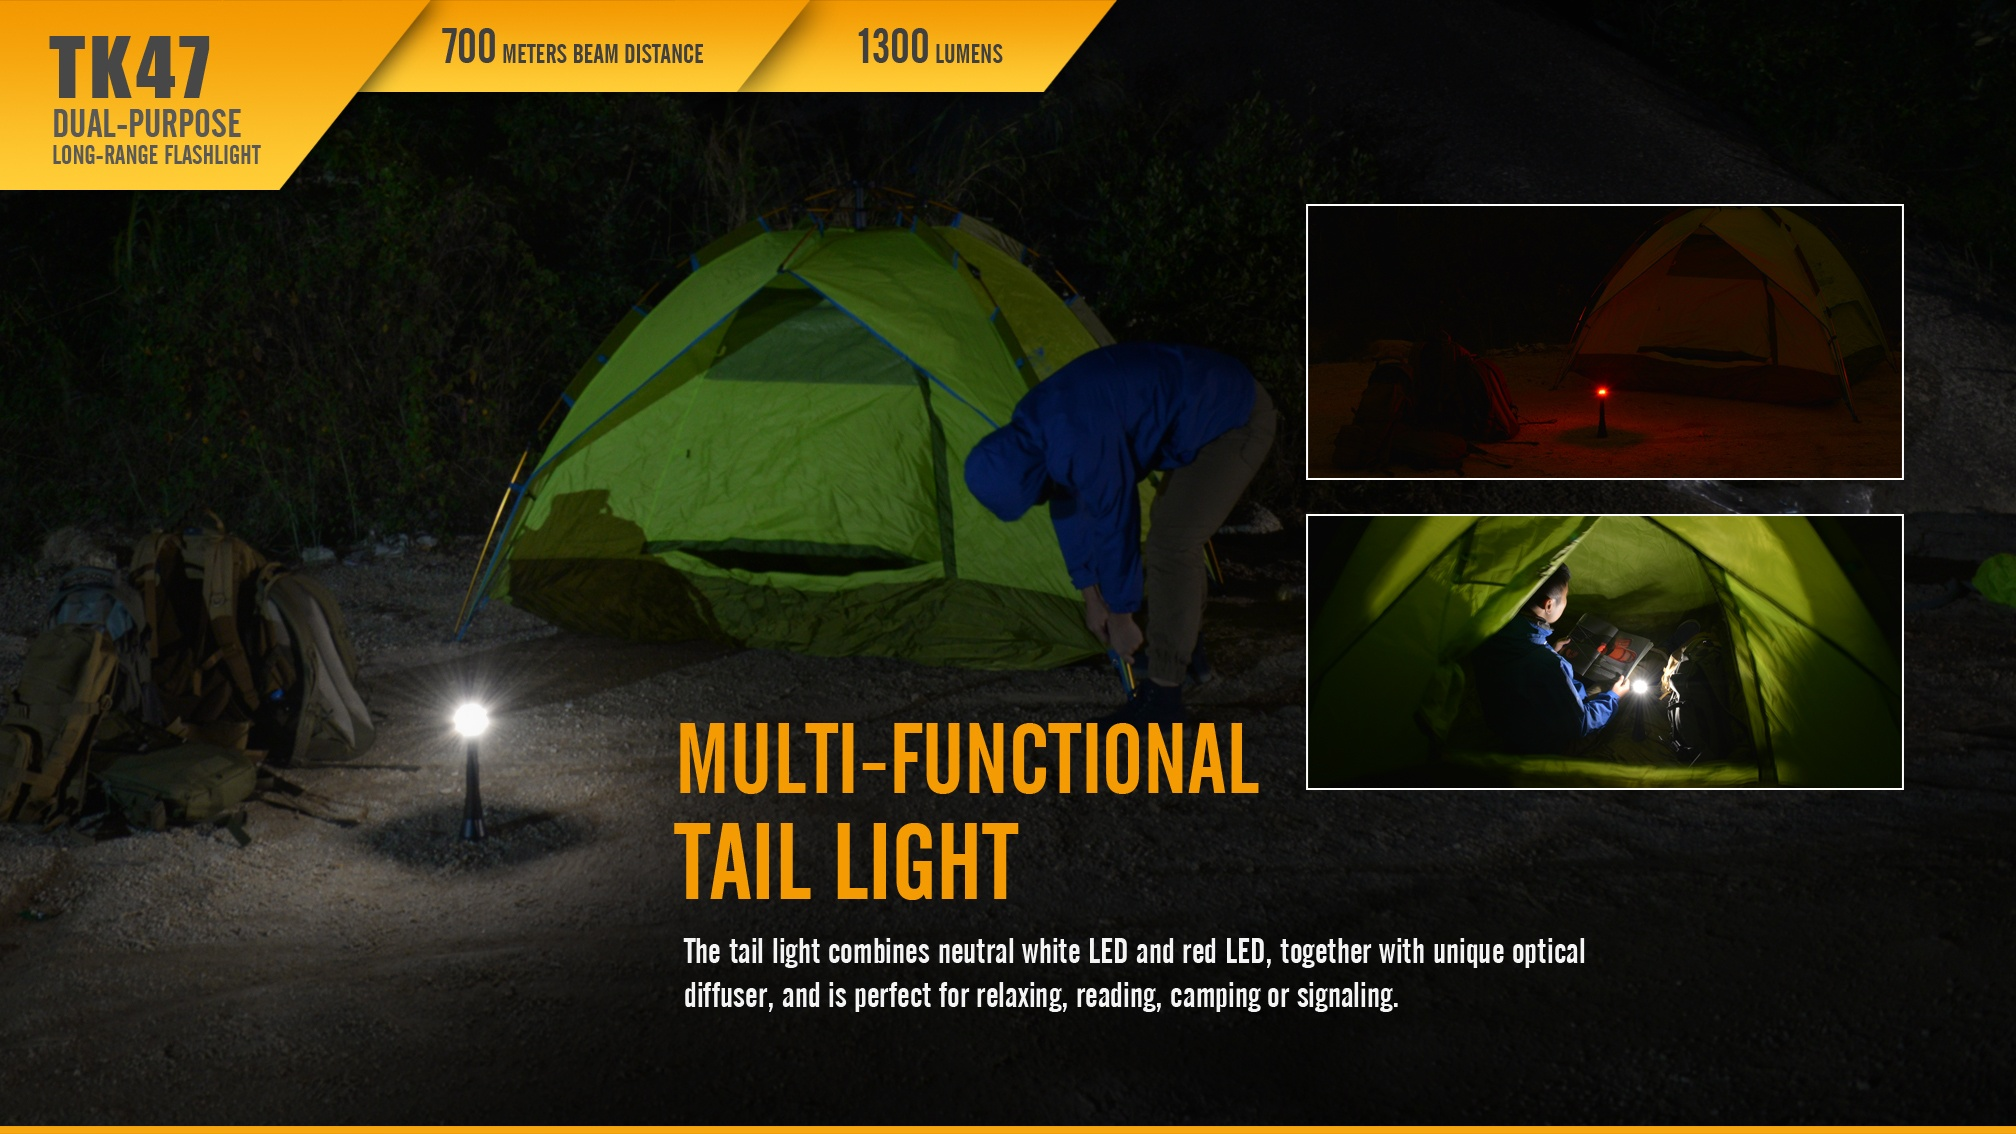 Fenix TK47 Dual-Purpose LED Flashlight Camping